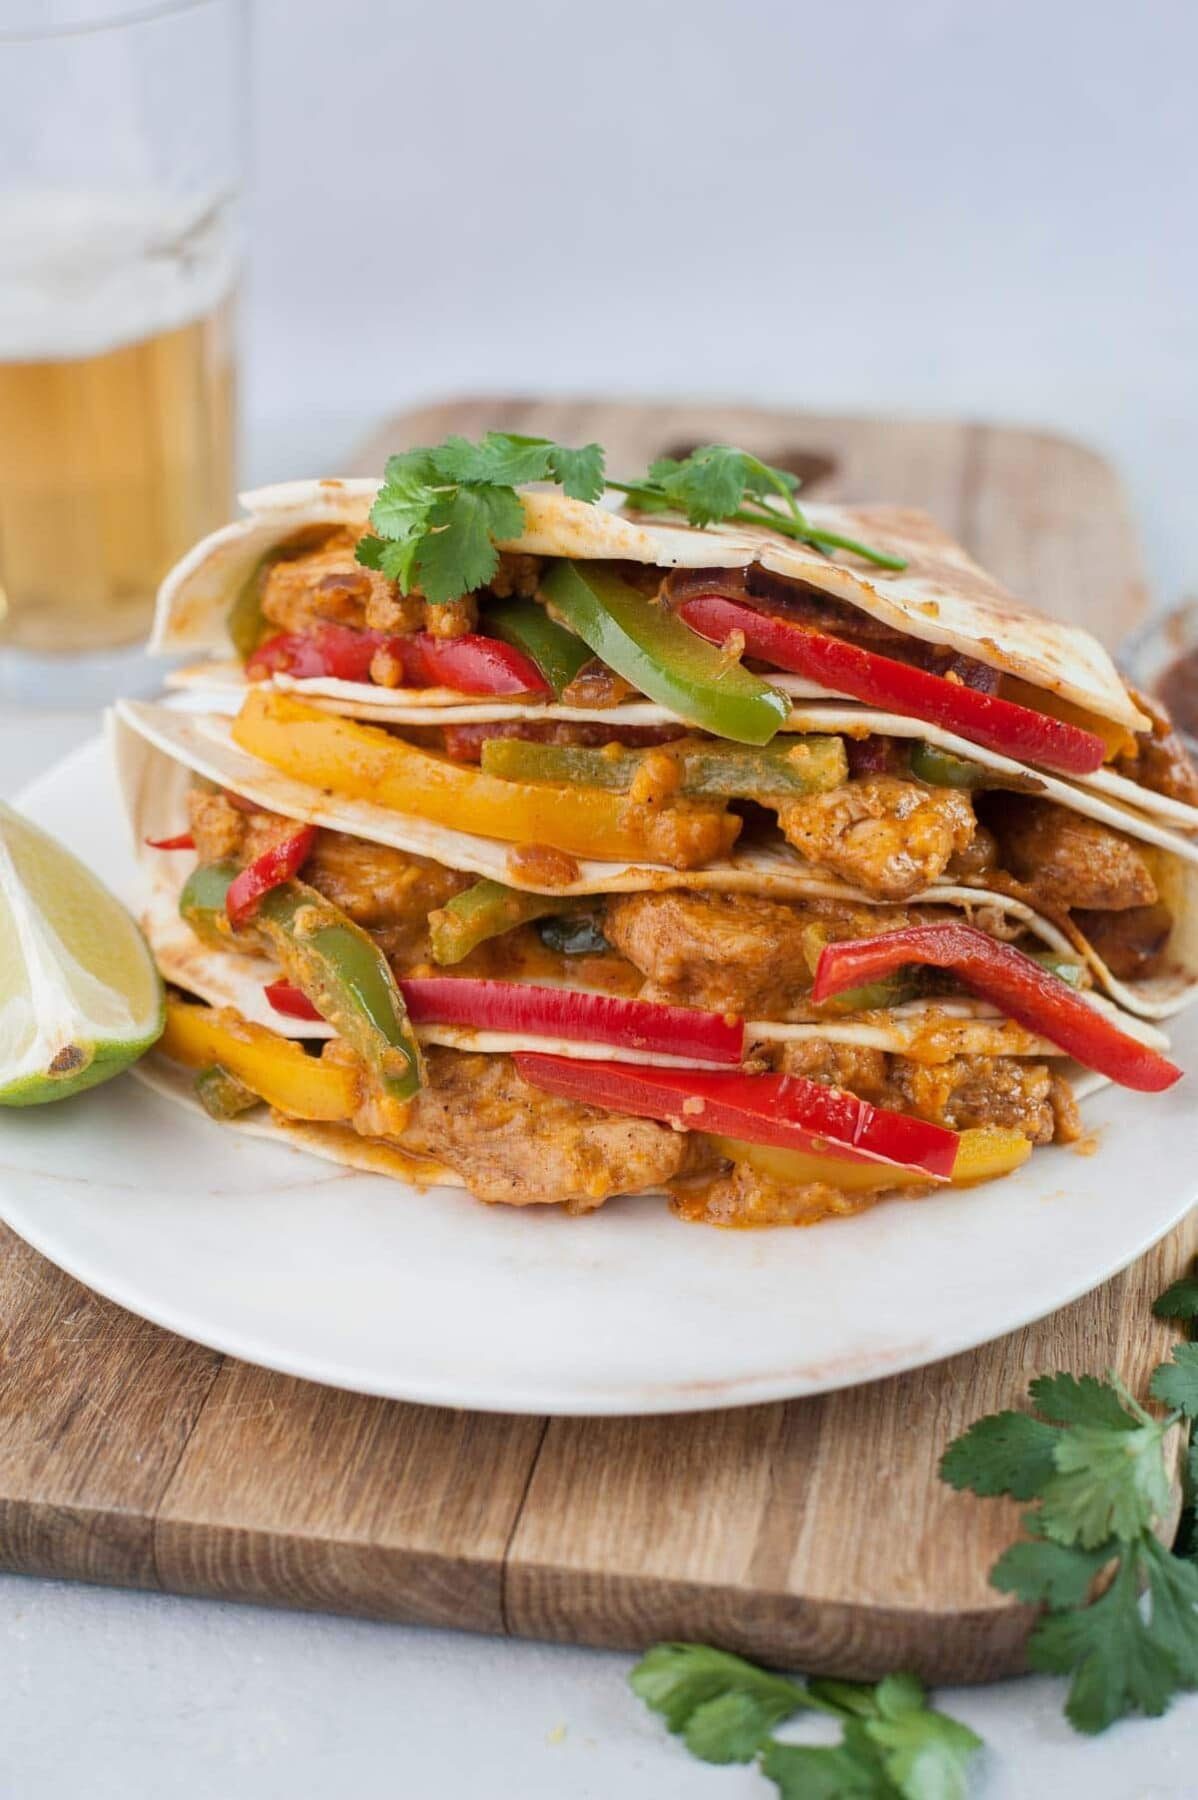 Chicken fajita quesadillas on a wooden boards topped with cilantro leaves.